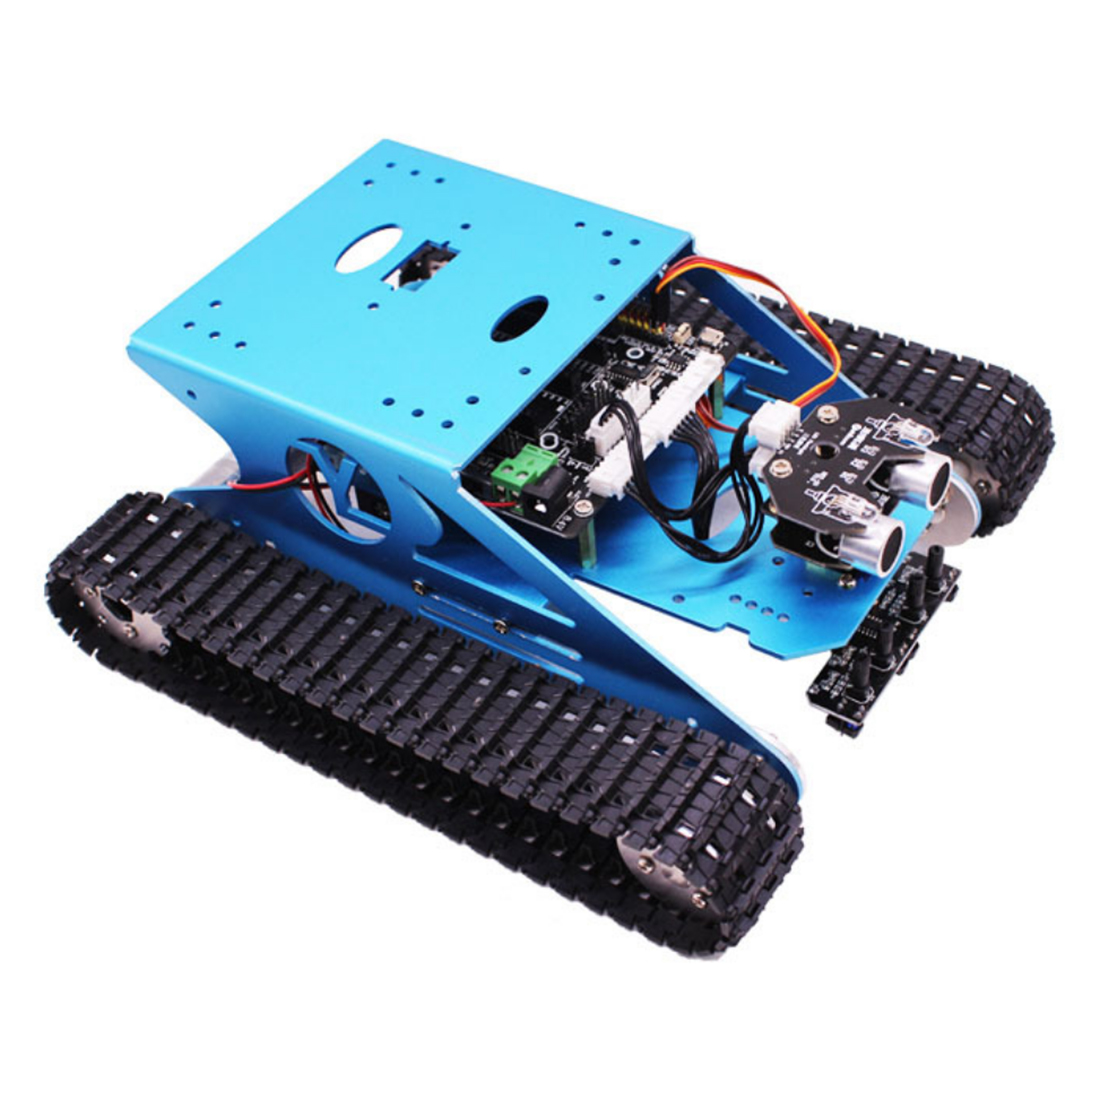 Programmable Smart Tank Mobile Platform Chassis Robot Electronic Project Learning With C Language Graphical Super Climbing in Programmable Toys from Toys Hobbies